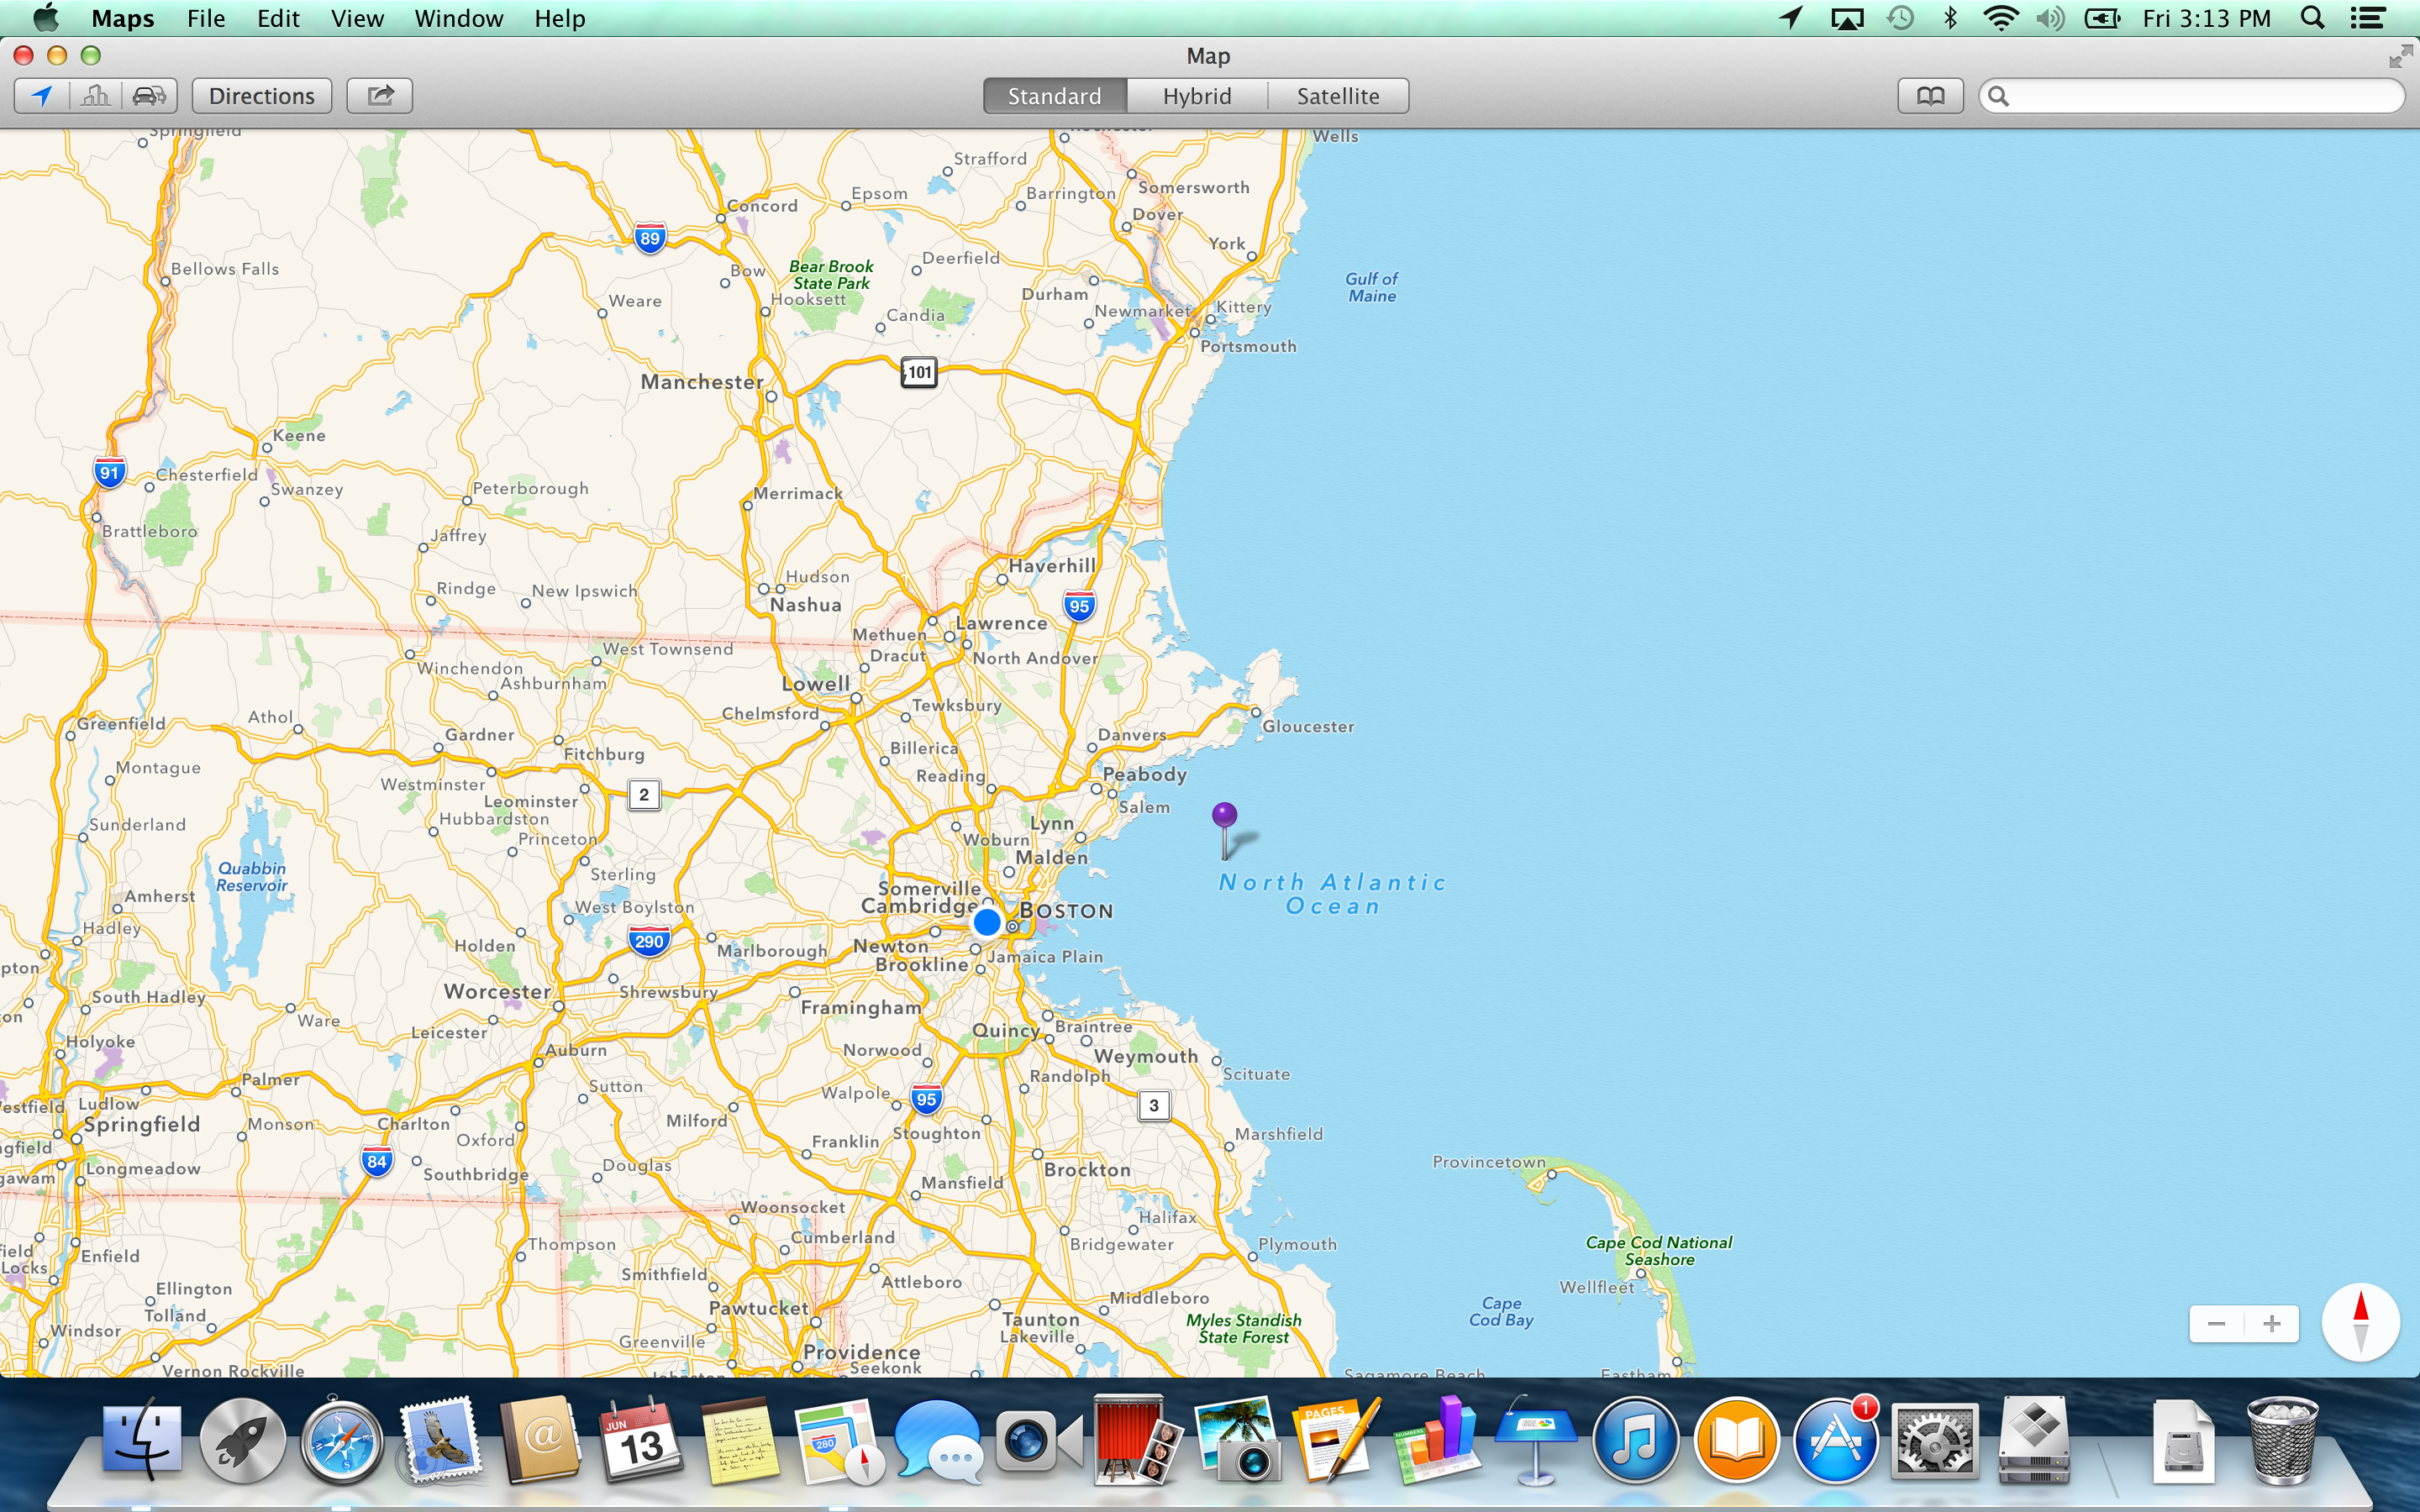 A screenshot of the Apple MacBook Pro with Retina Display's Maps software.